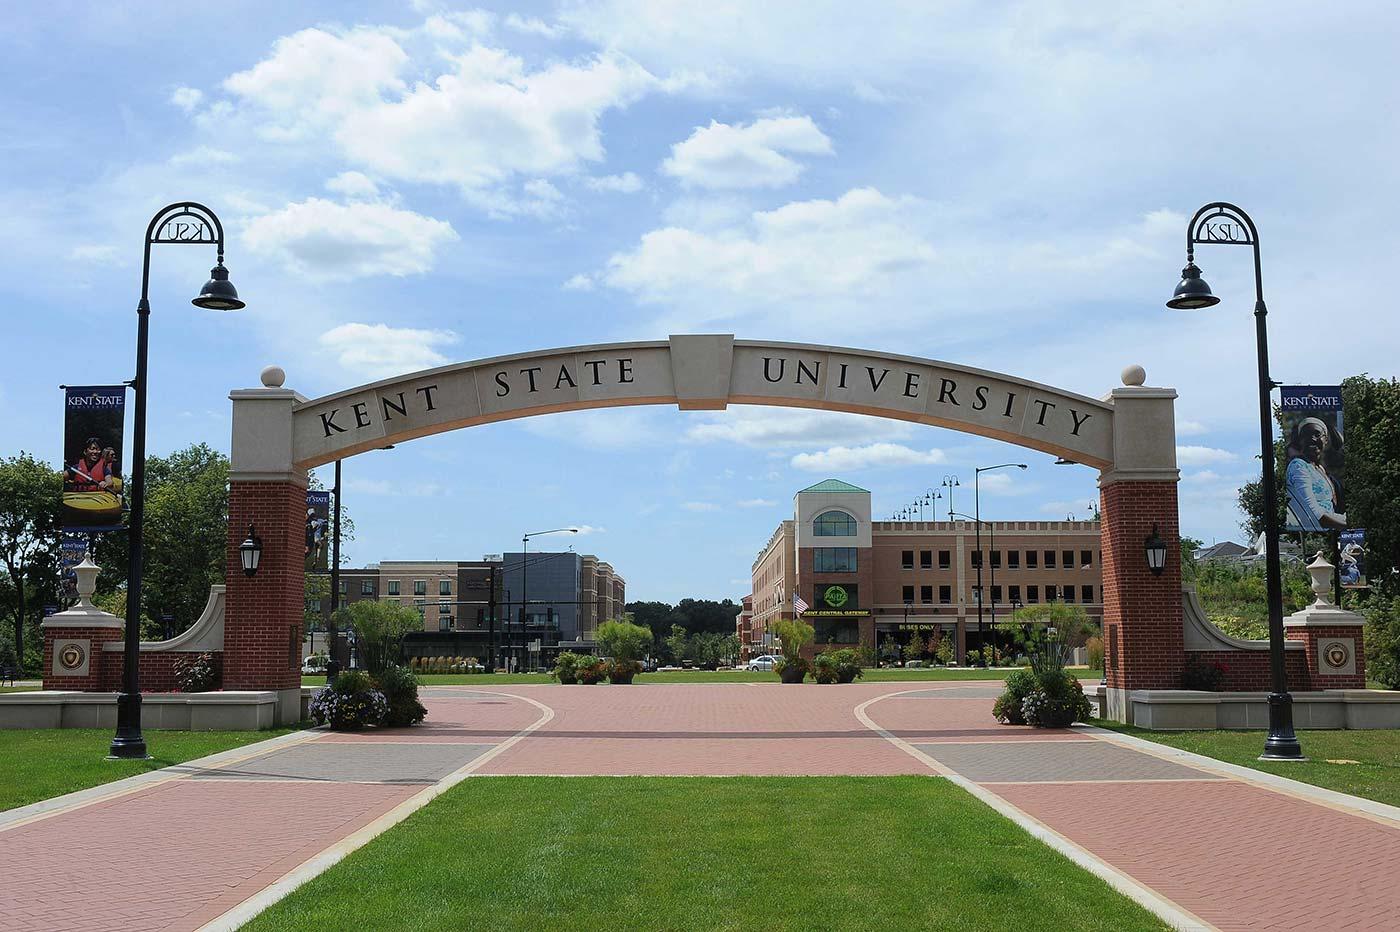 The Kent State University campus.